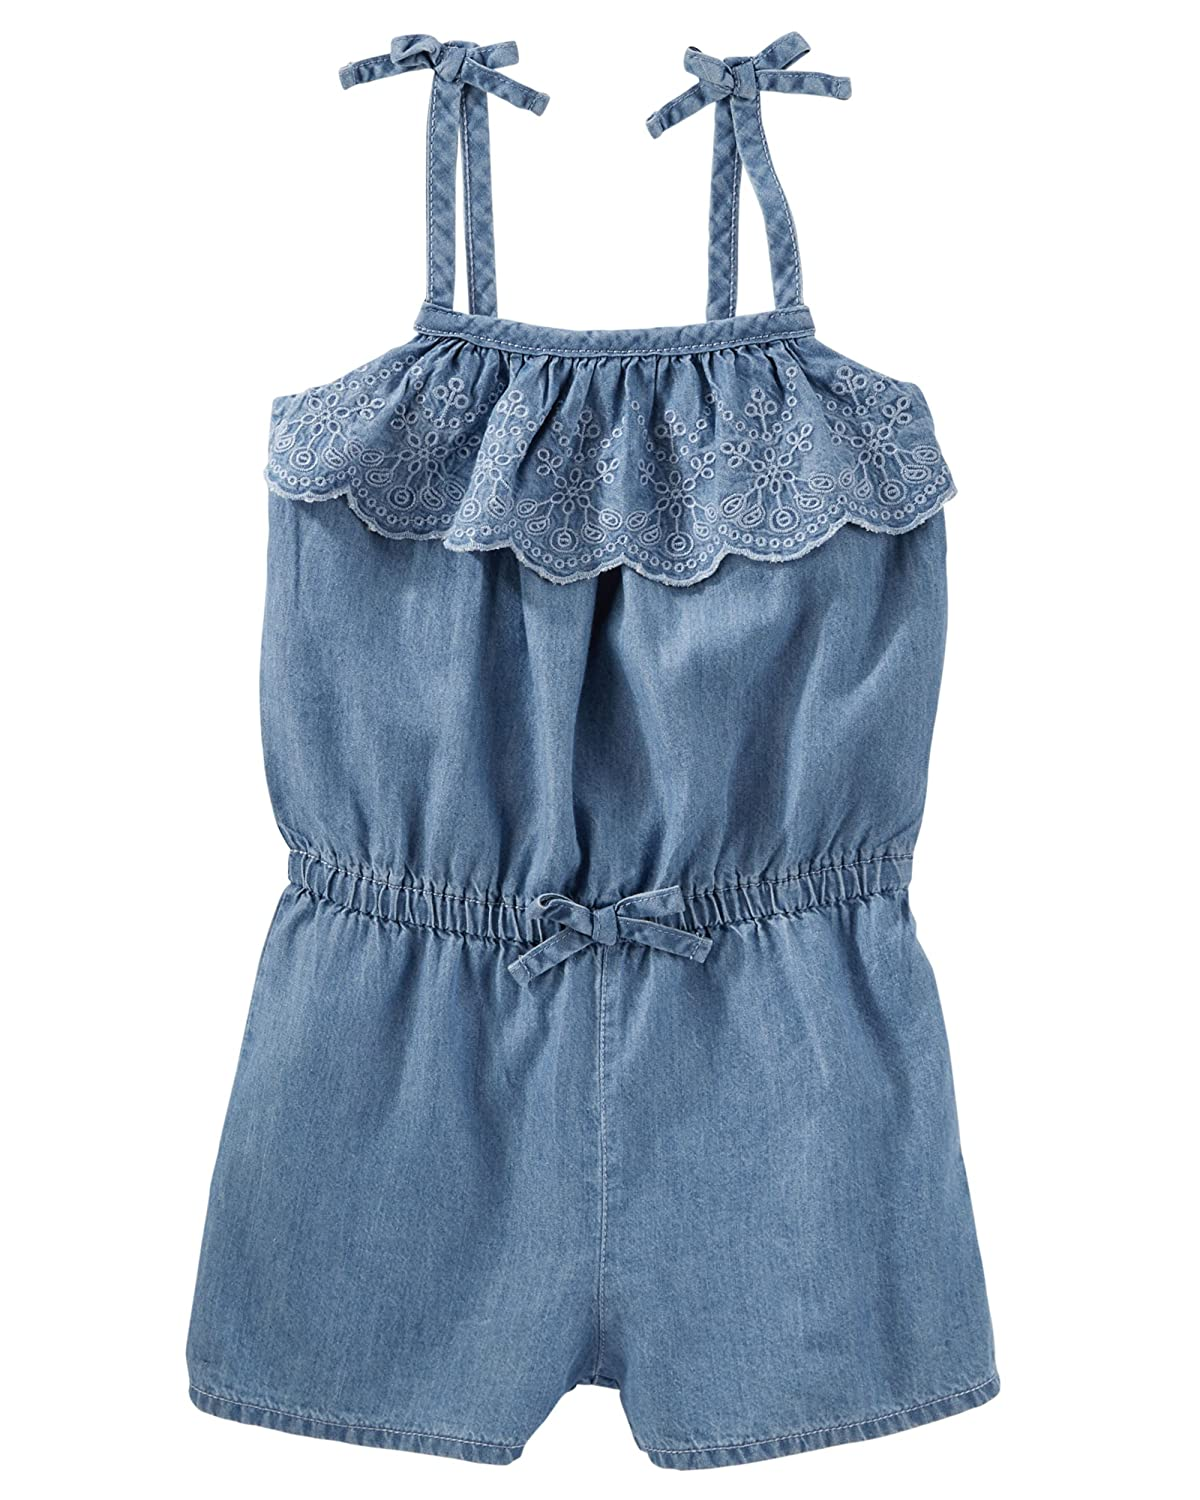 OshKosh Bgosh Little Girls Eyelet Ruffle Chambray Romper 2T